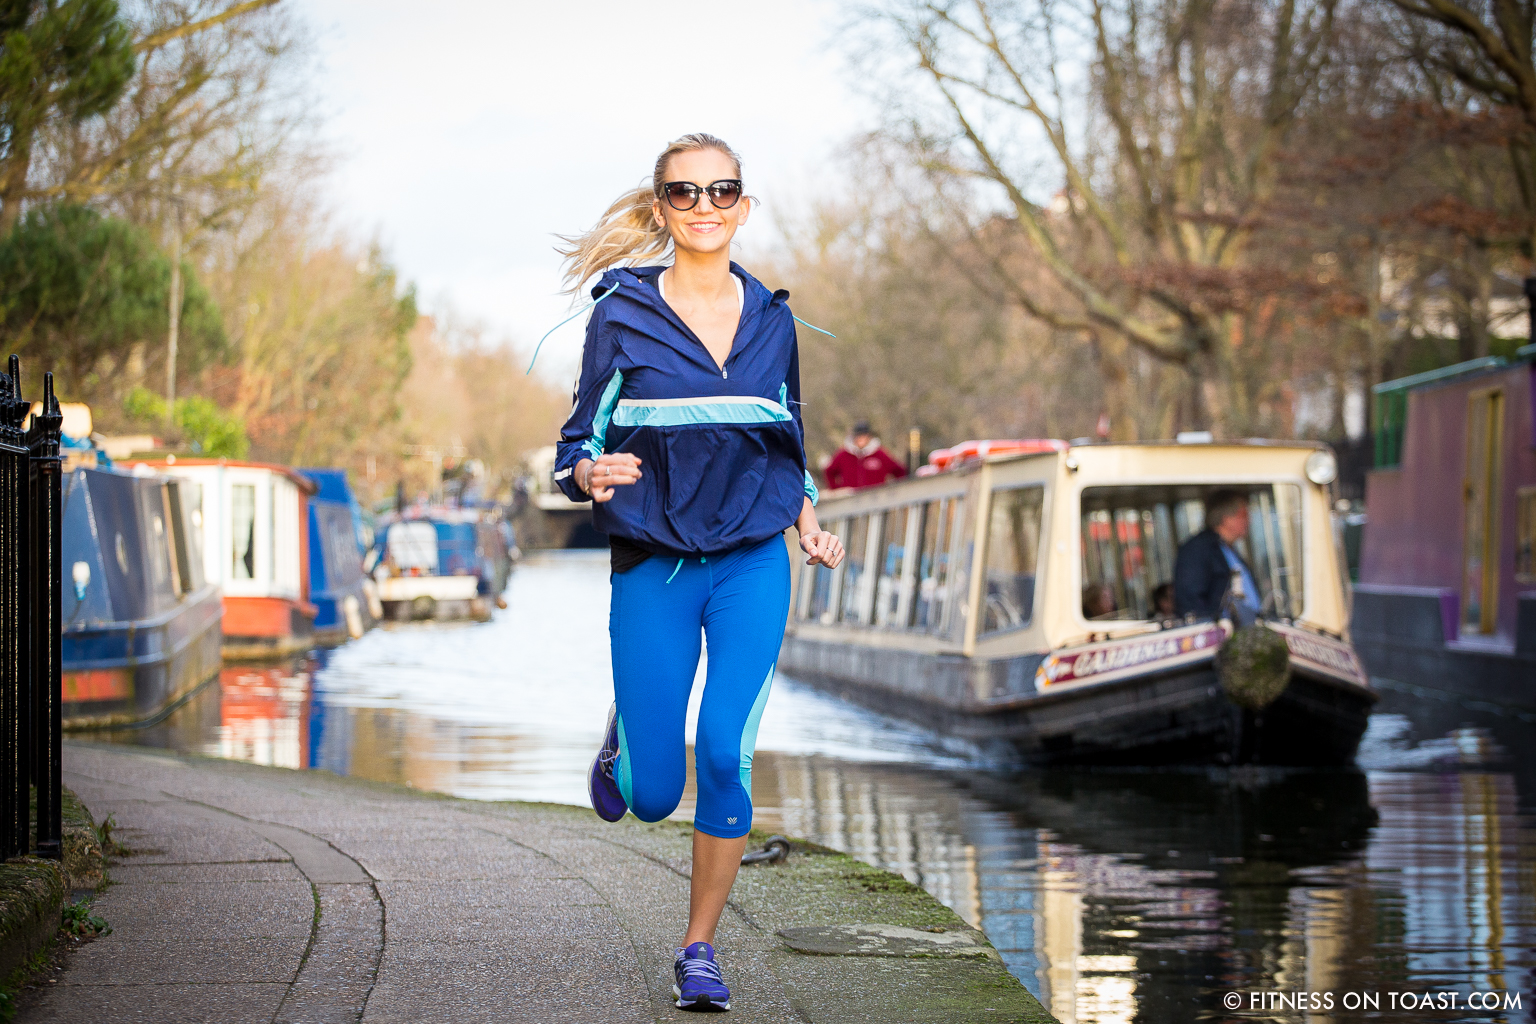 Fitness On Toast Faya Blog Girl Healthy Exercise Canal Hiit Sprint Training Workout Idea Forever 21 Activewear London Little Venice Canal Running Run